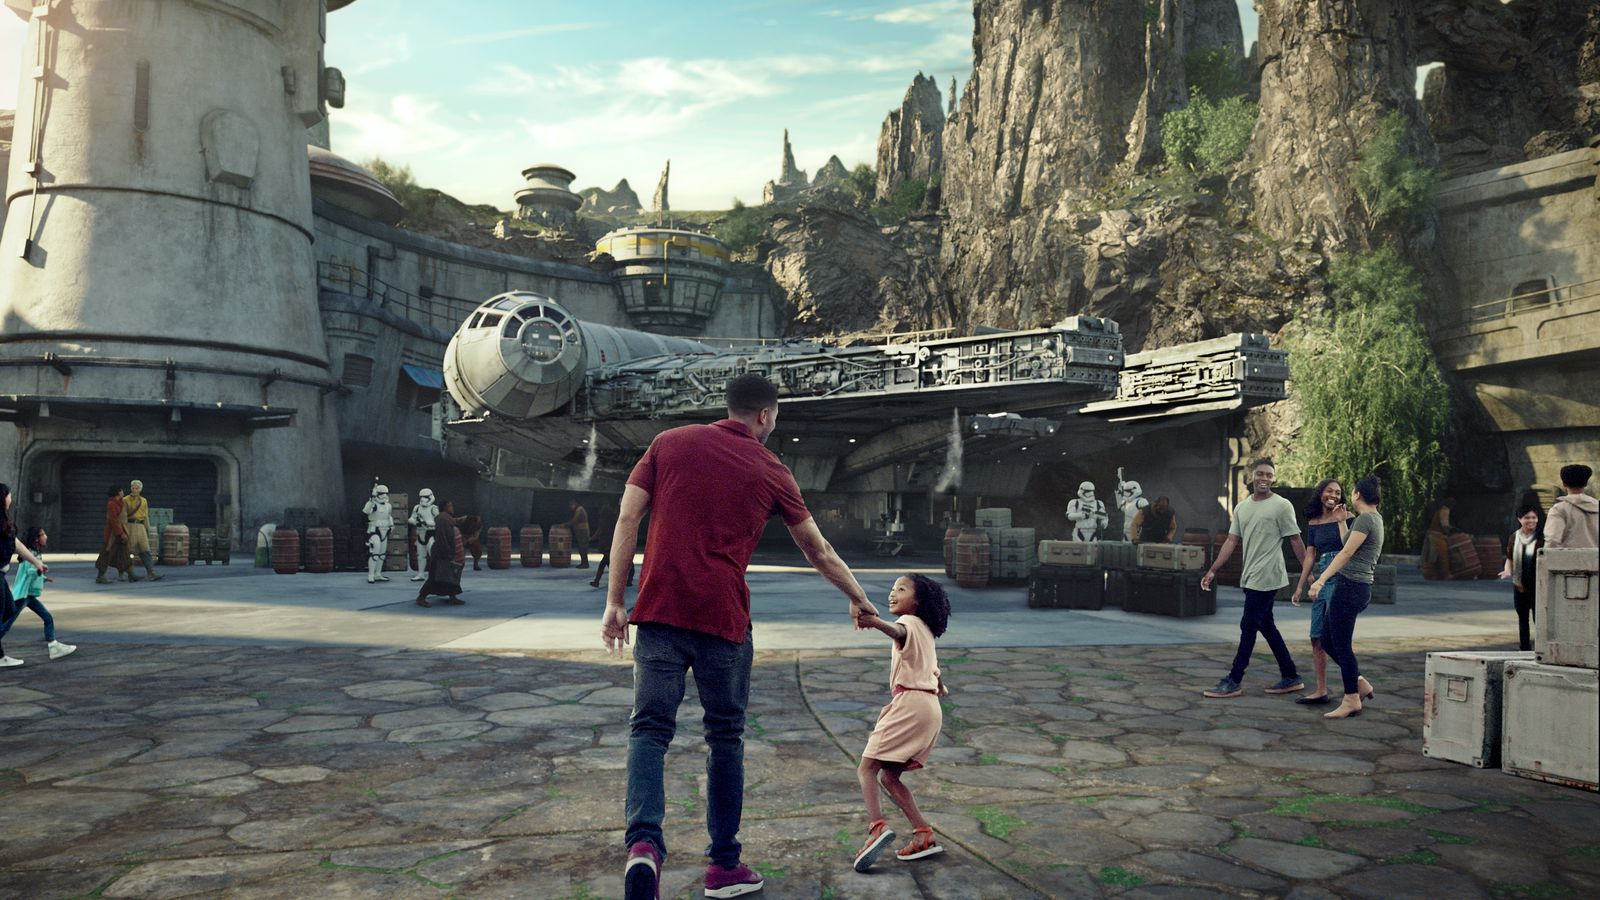 Here S Everything We Know About Disney S Star Wars Land